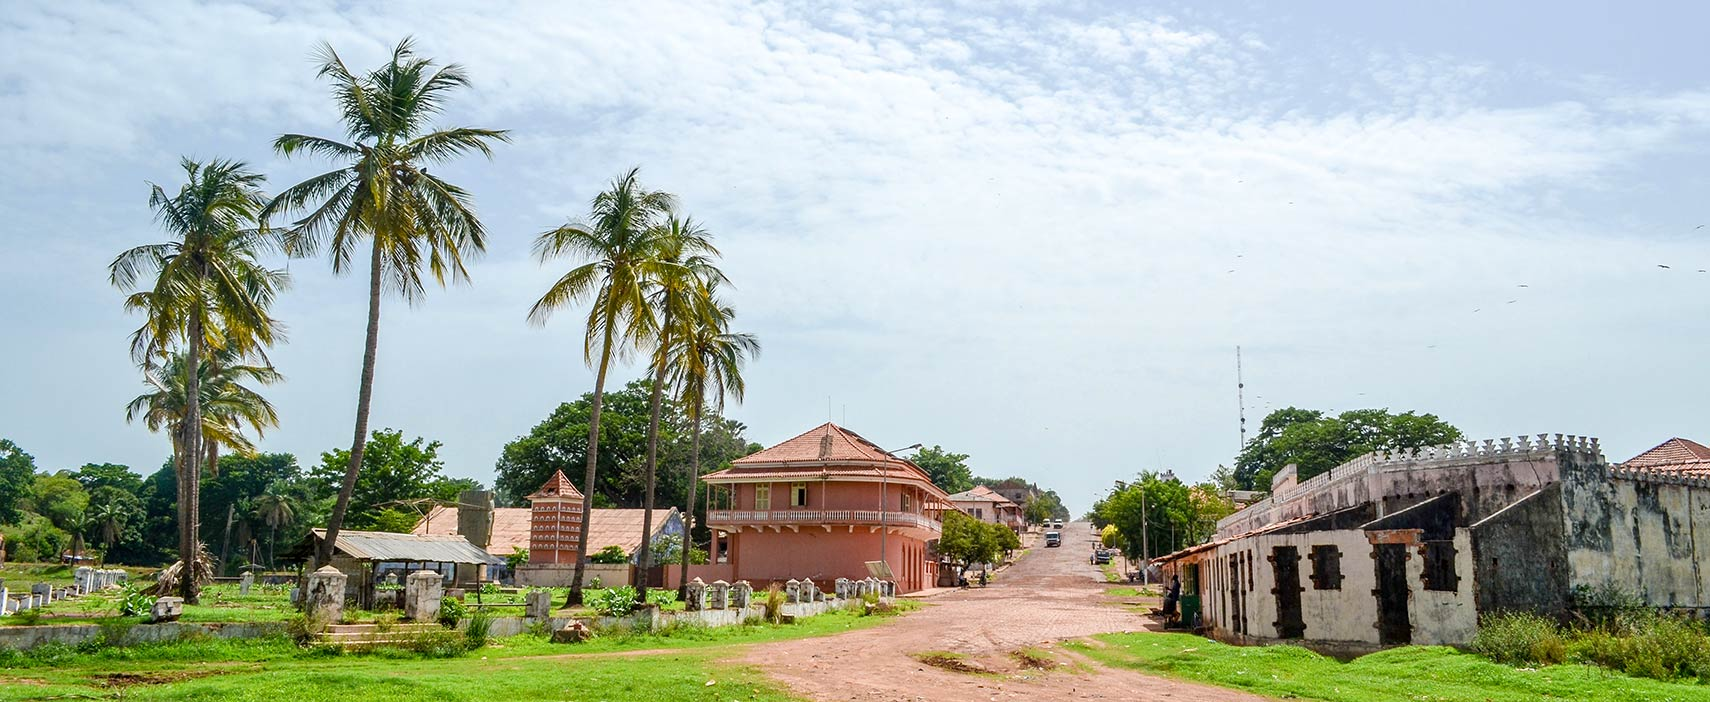 Colonial town of Bafata in Guinea-Bissau